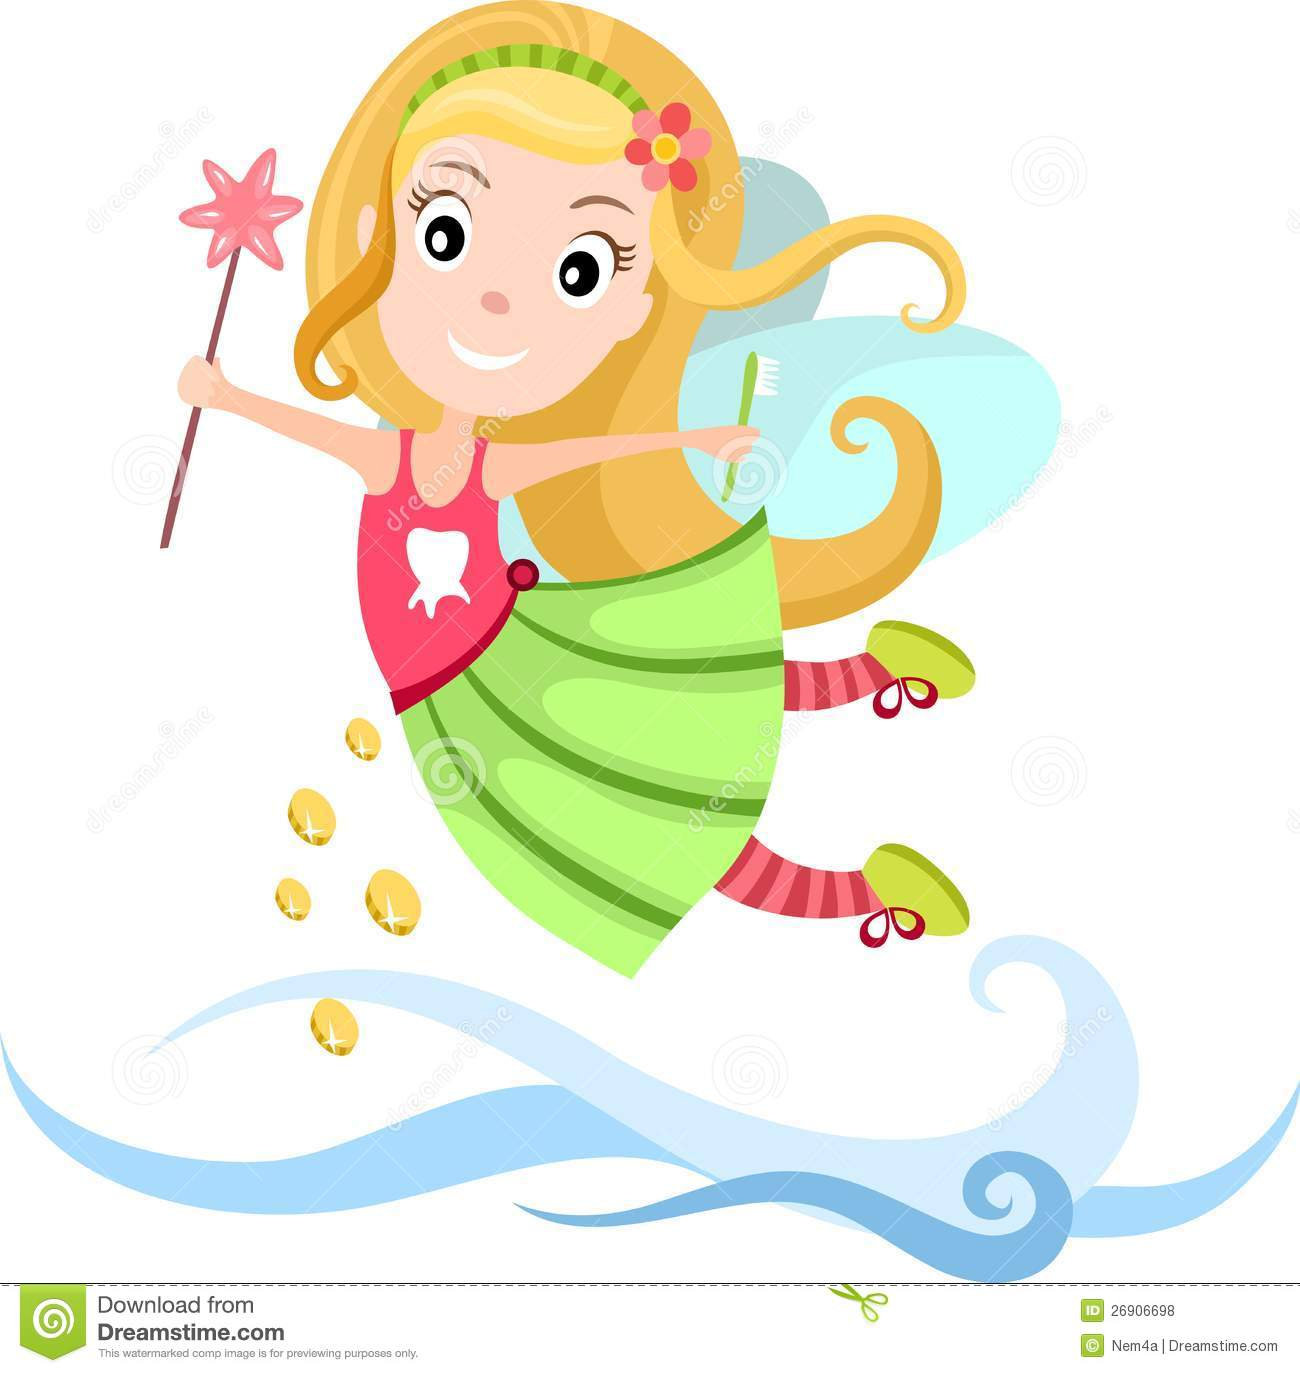 Tooth Fairy Royalty Free Stock Photos - Image: 26906698